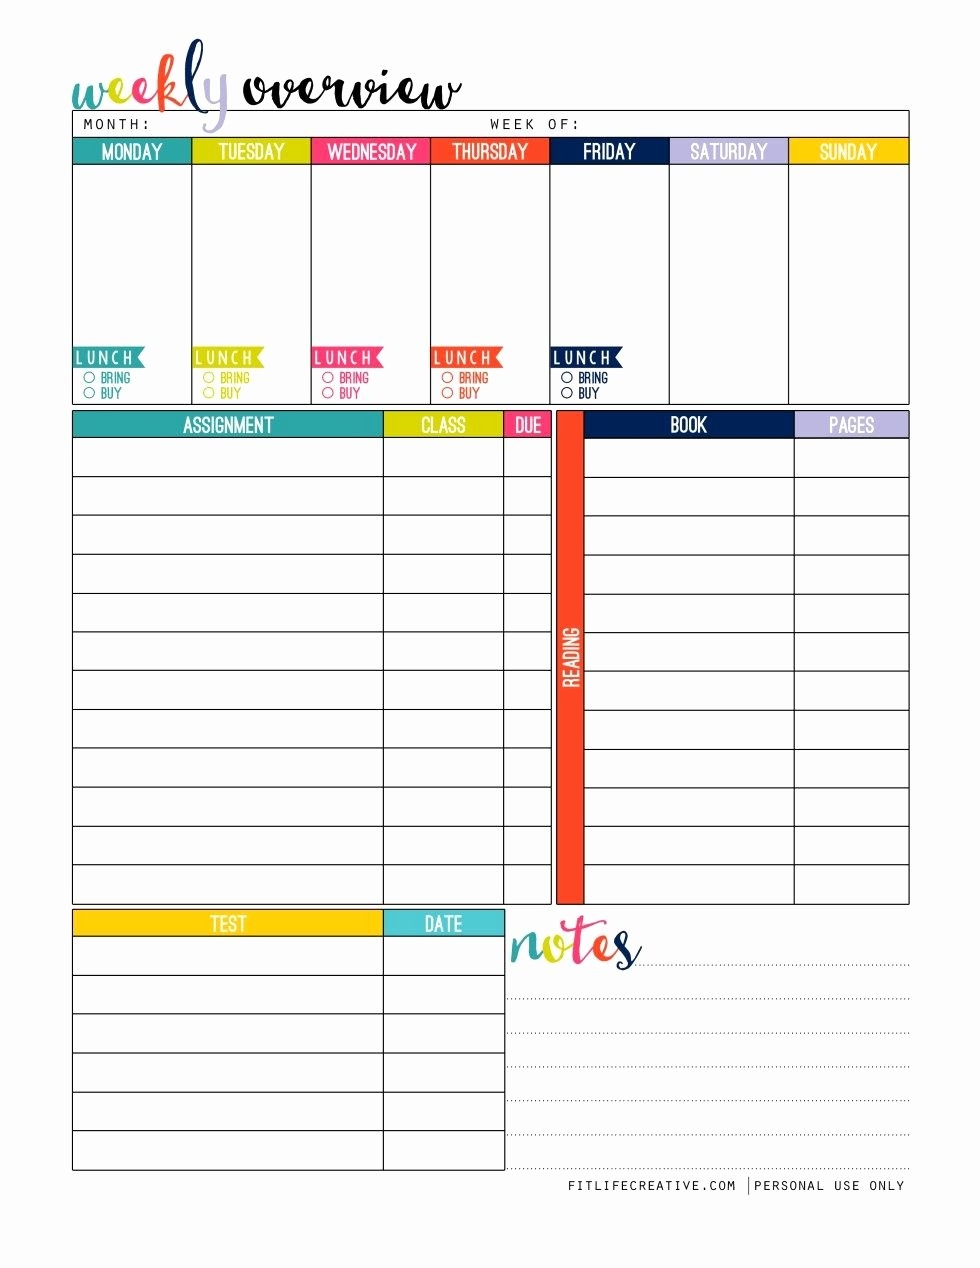 Student Weekly Schedule Template Fresh Weekly Overview Student Full Page